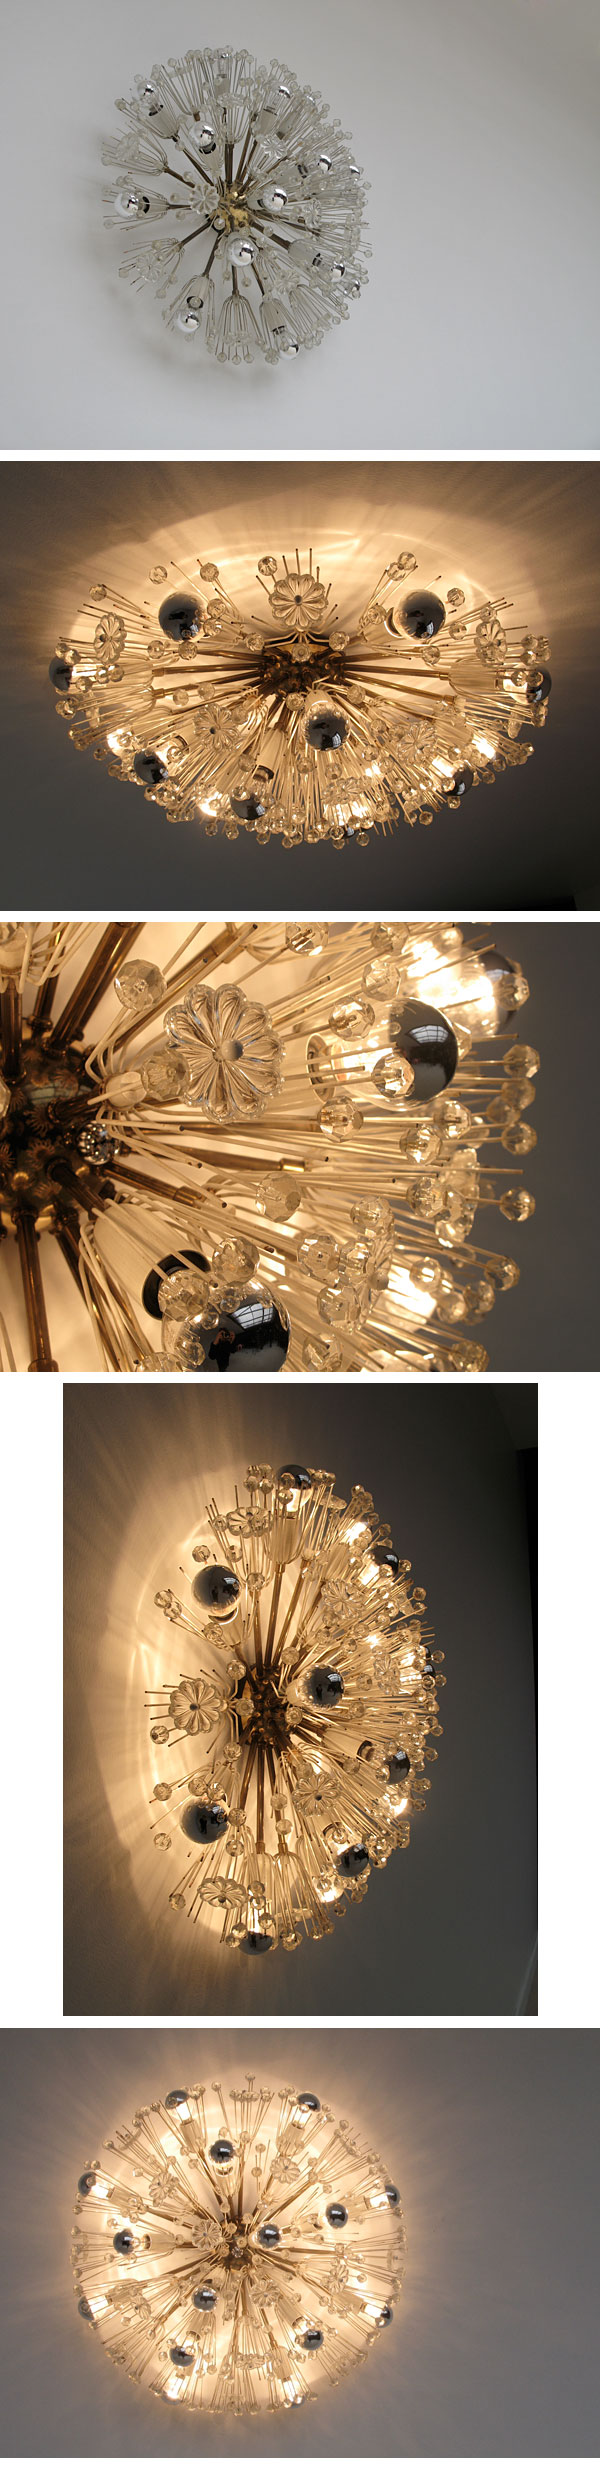 beautifull, decorative, 50s, sputnik, flower, ceiling, lamp